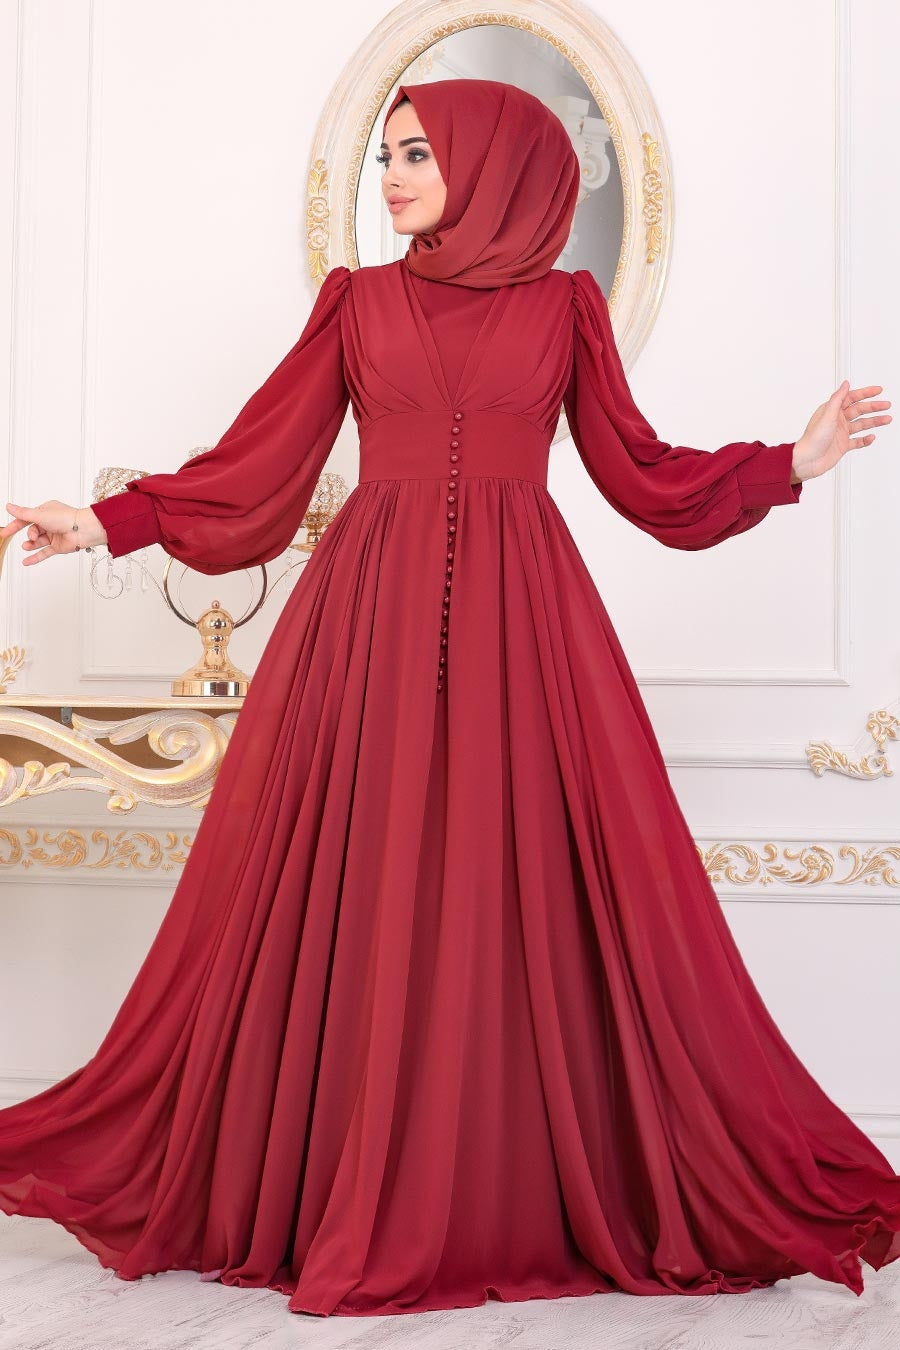 Women's Button Detail Claret Red Modest Evening Dress